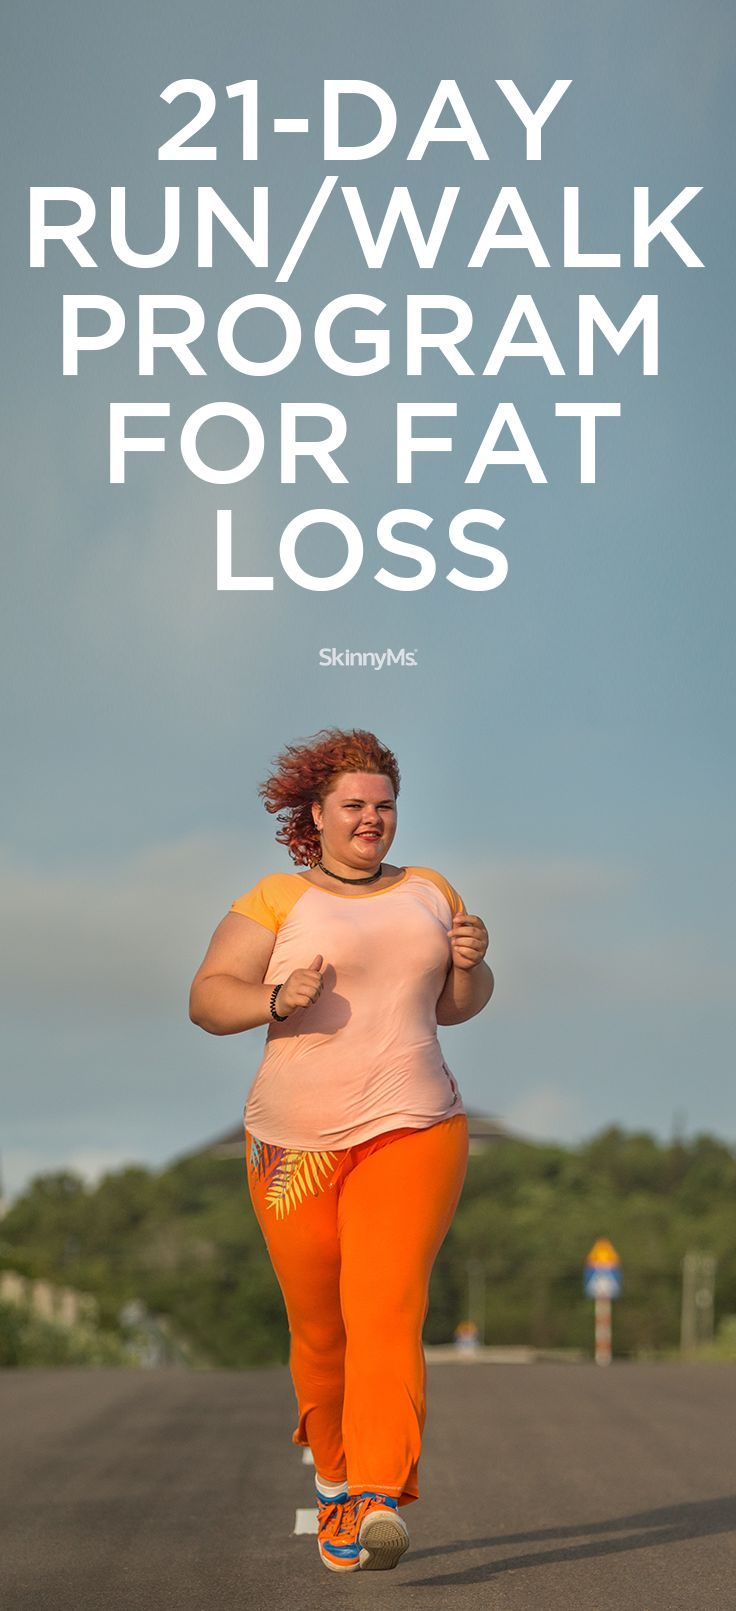 Emma forbes weight loss